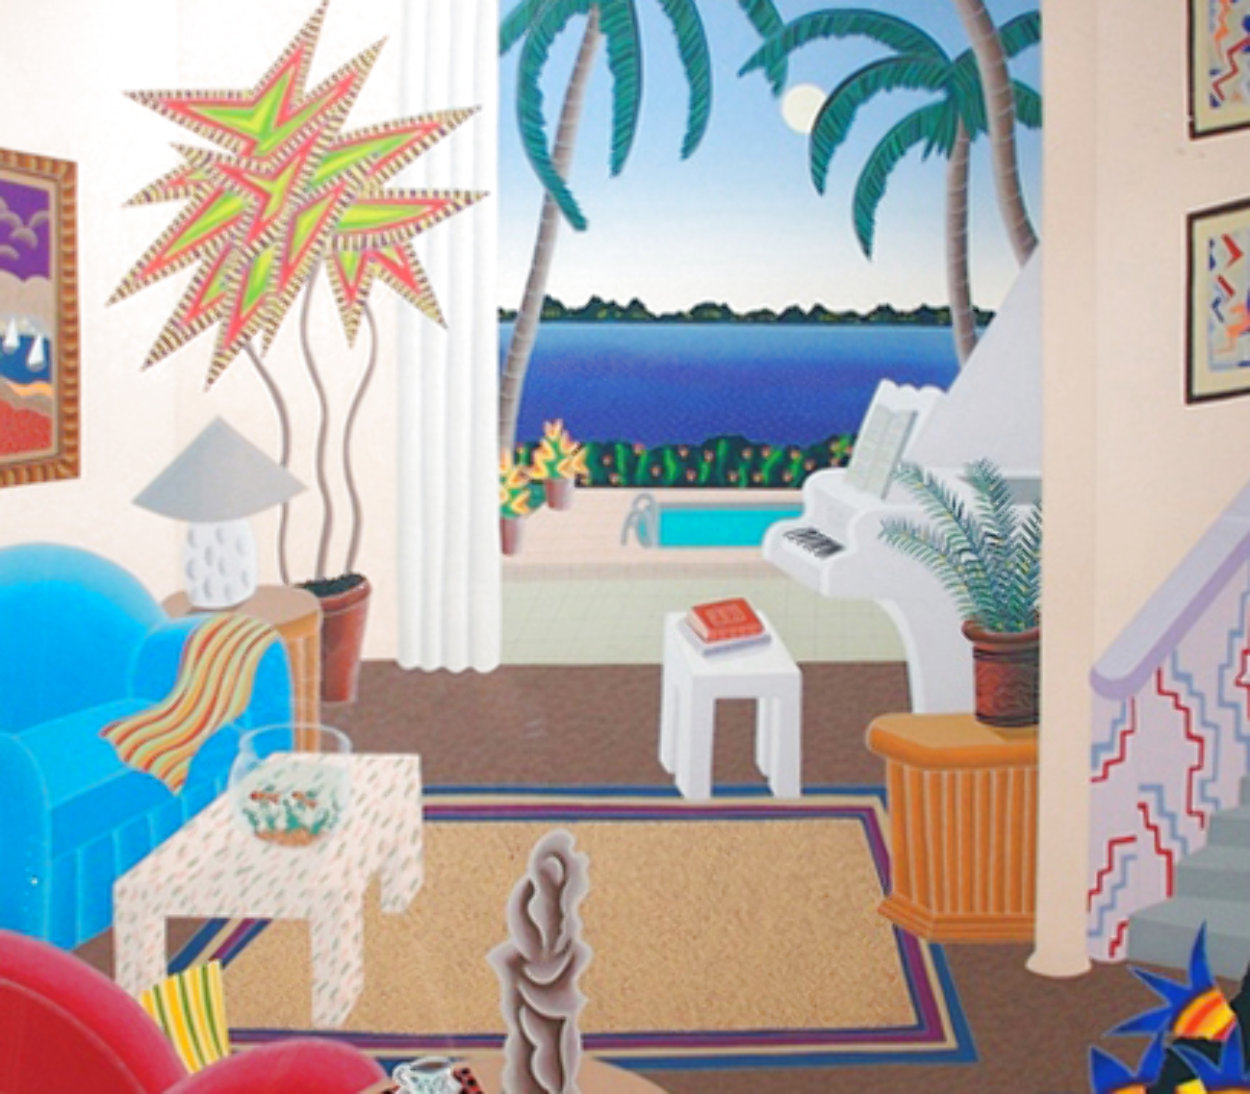 Boca Raton 1990 Huge 39x43 Super Huge  Limited Edition Print by Thomas Frederick McKnight